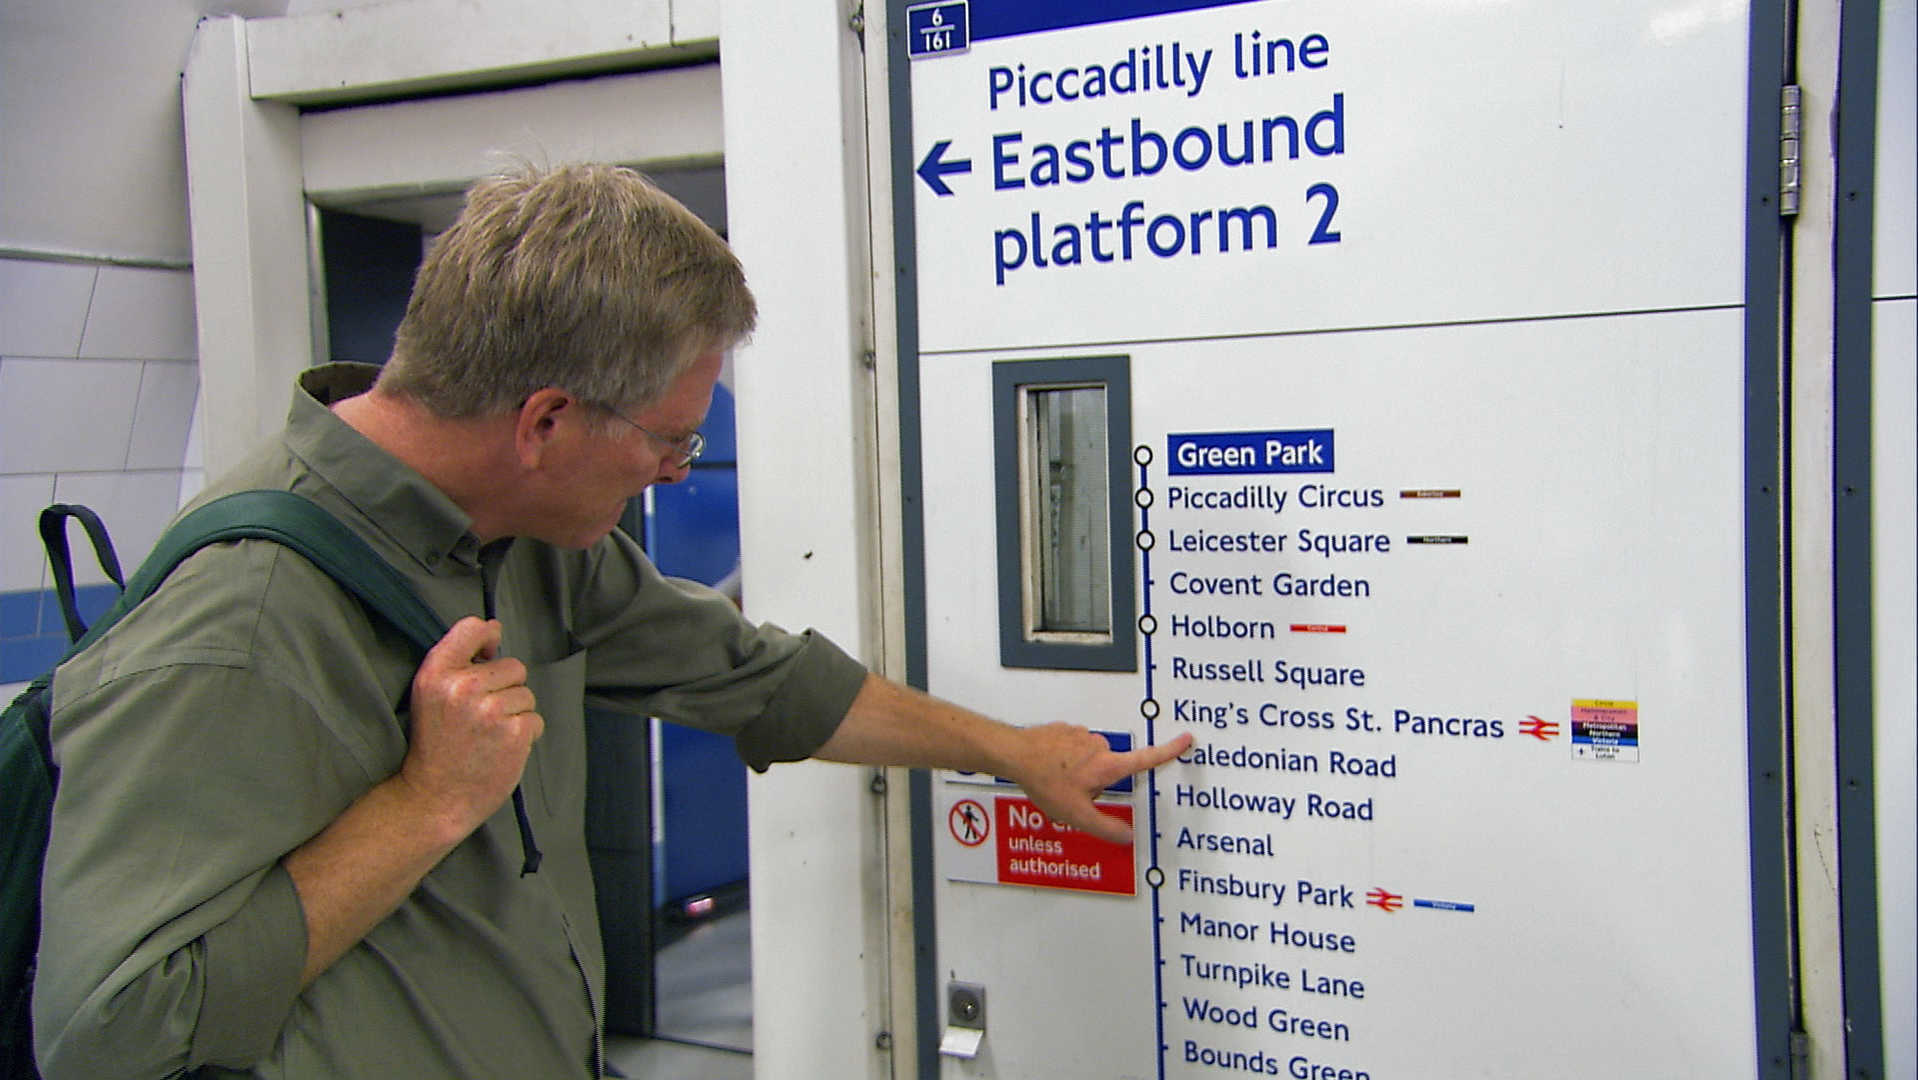 Rick Steves inspects train stops at King's Cross